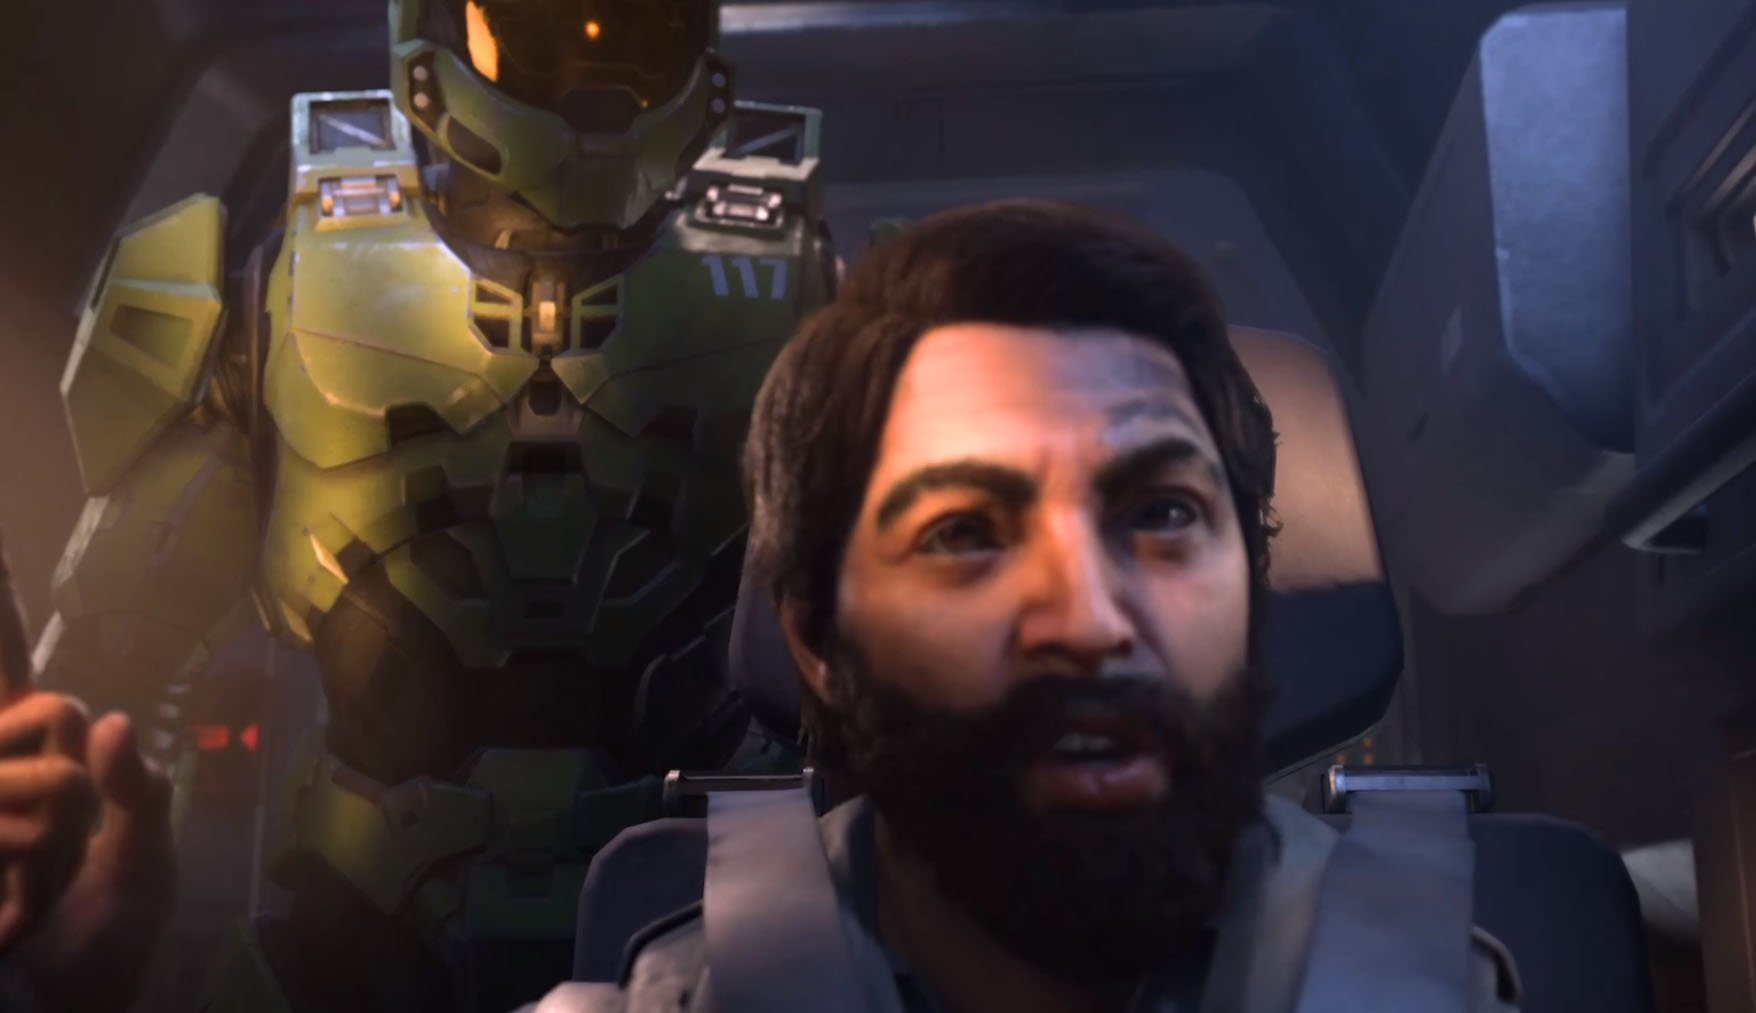 Here's our first real look at Halo Infinite screenshot